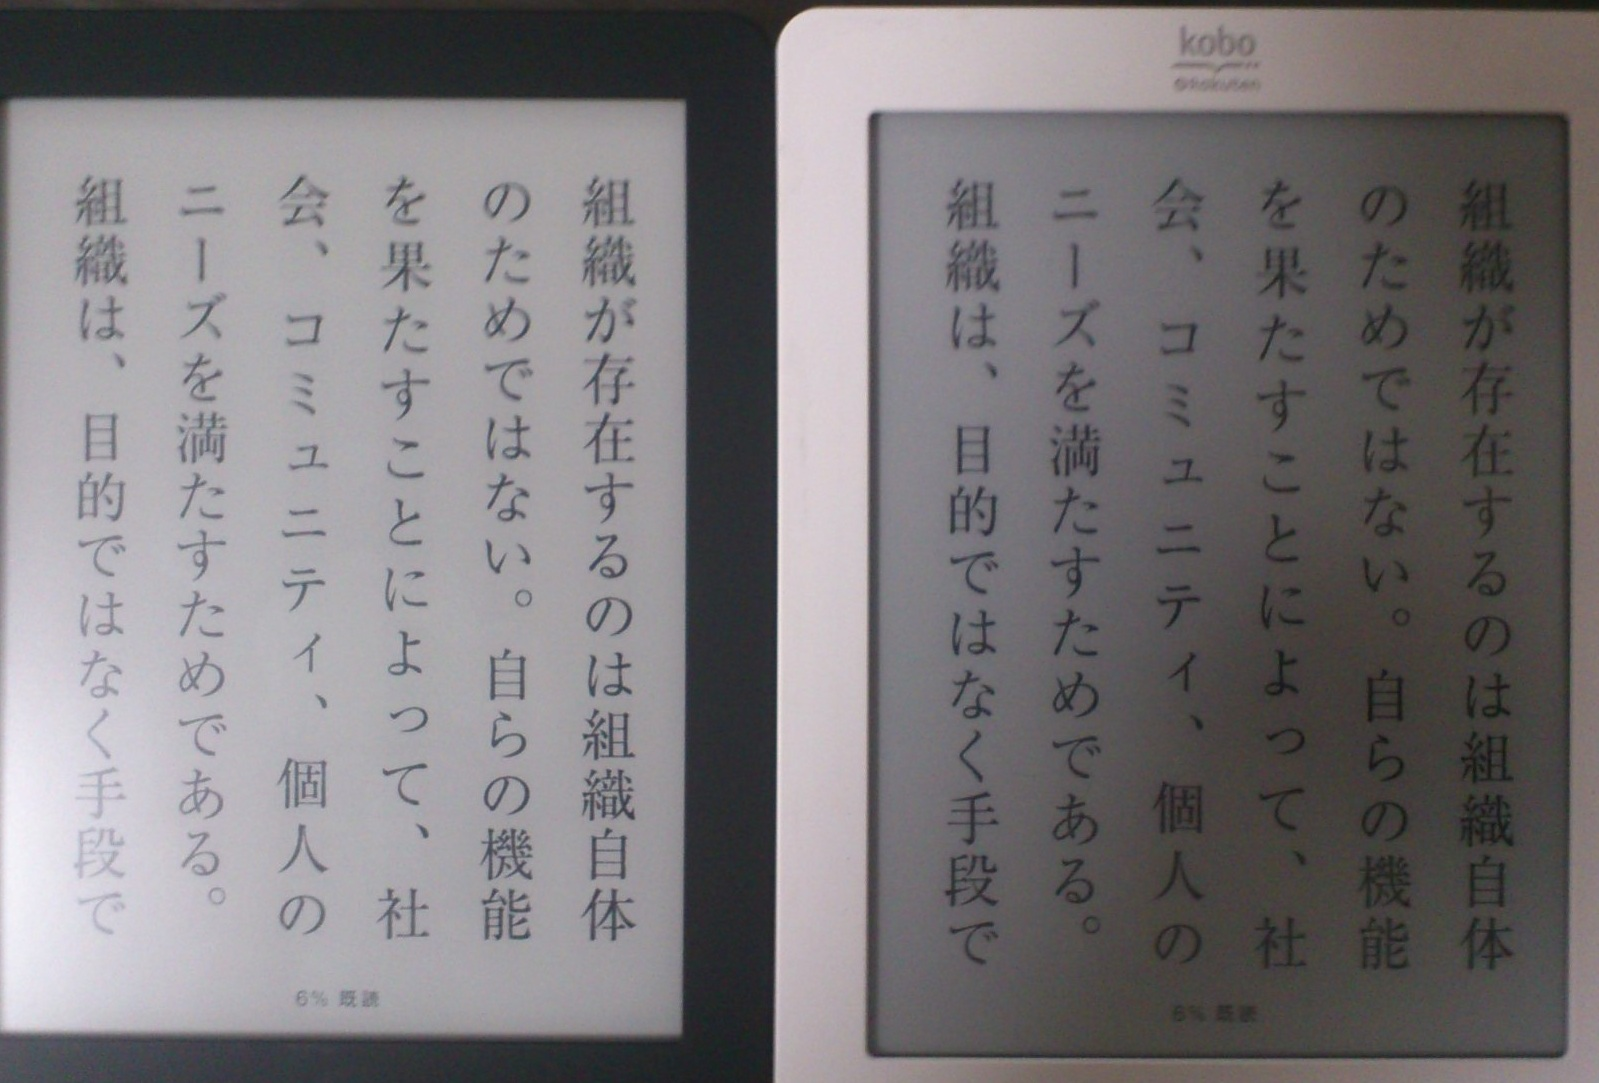 kobo touch glo 文字の鮮明さ 違いは何?